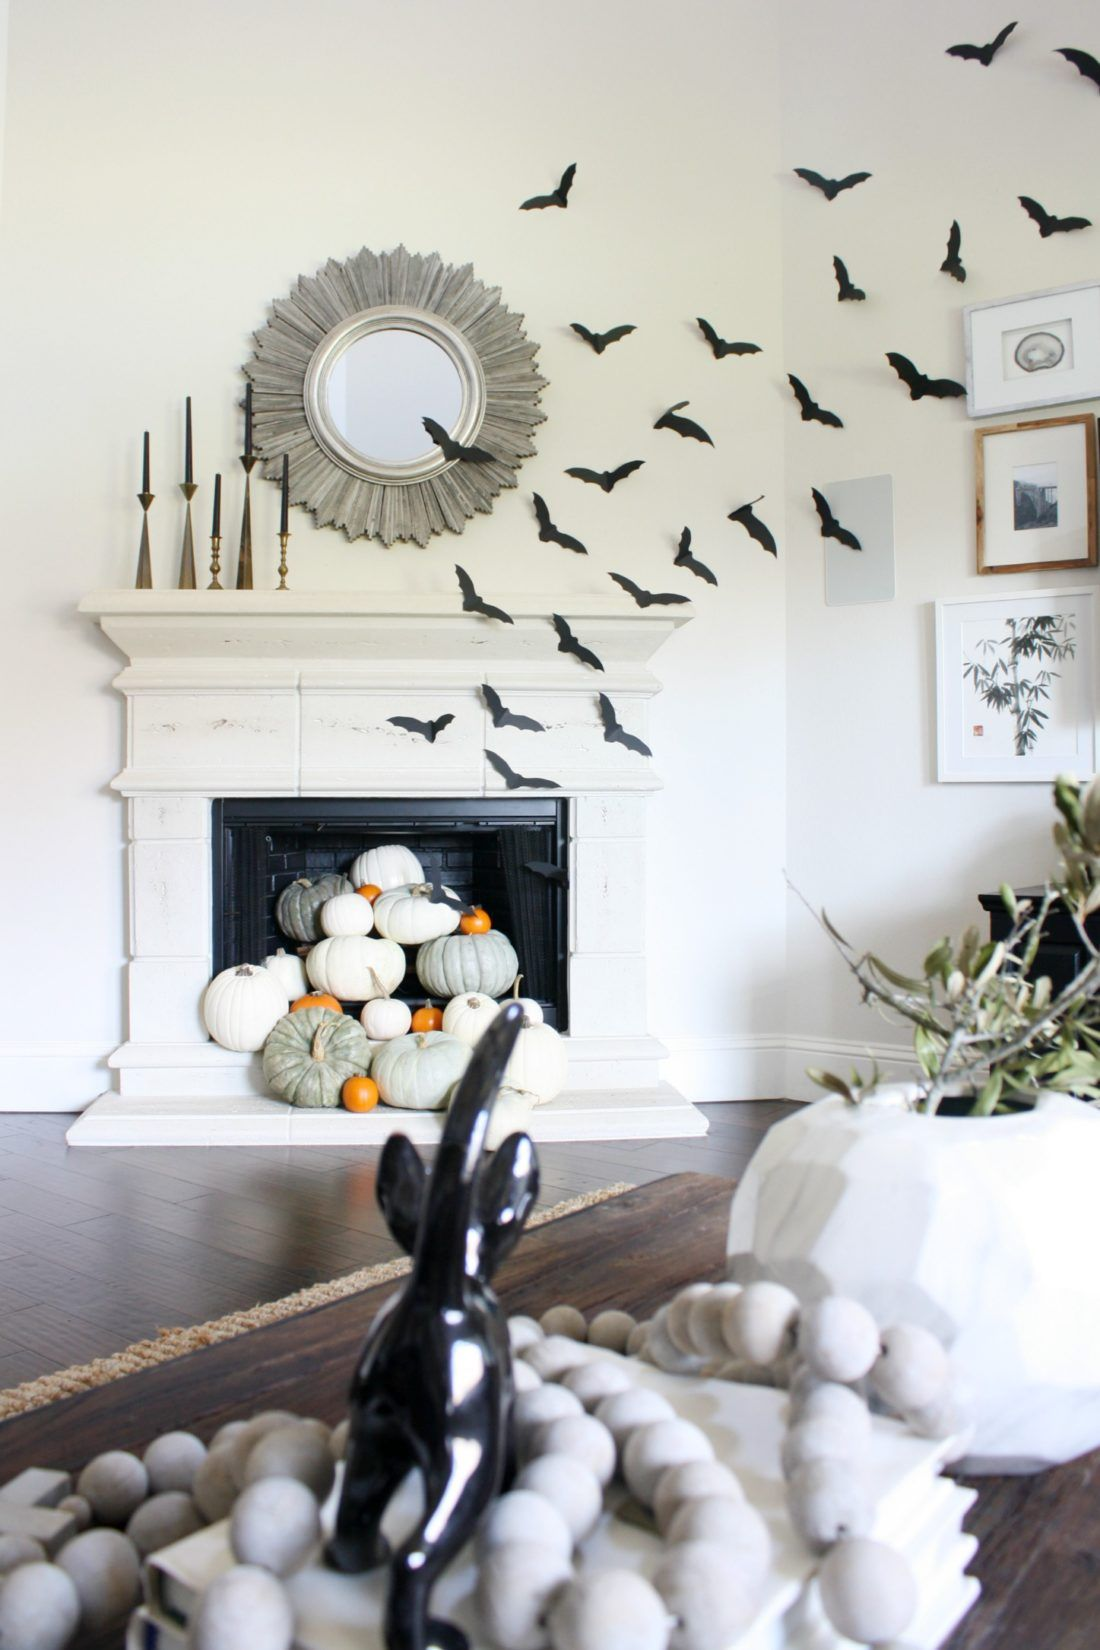 Simple Decorations Crazy Wonderful Paper Bats Bat Decor Pumpkins In Fireplace Mantle Ideas